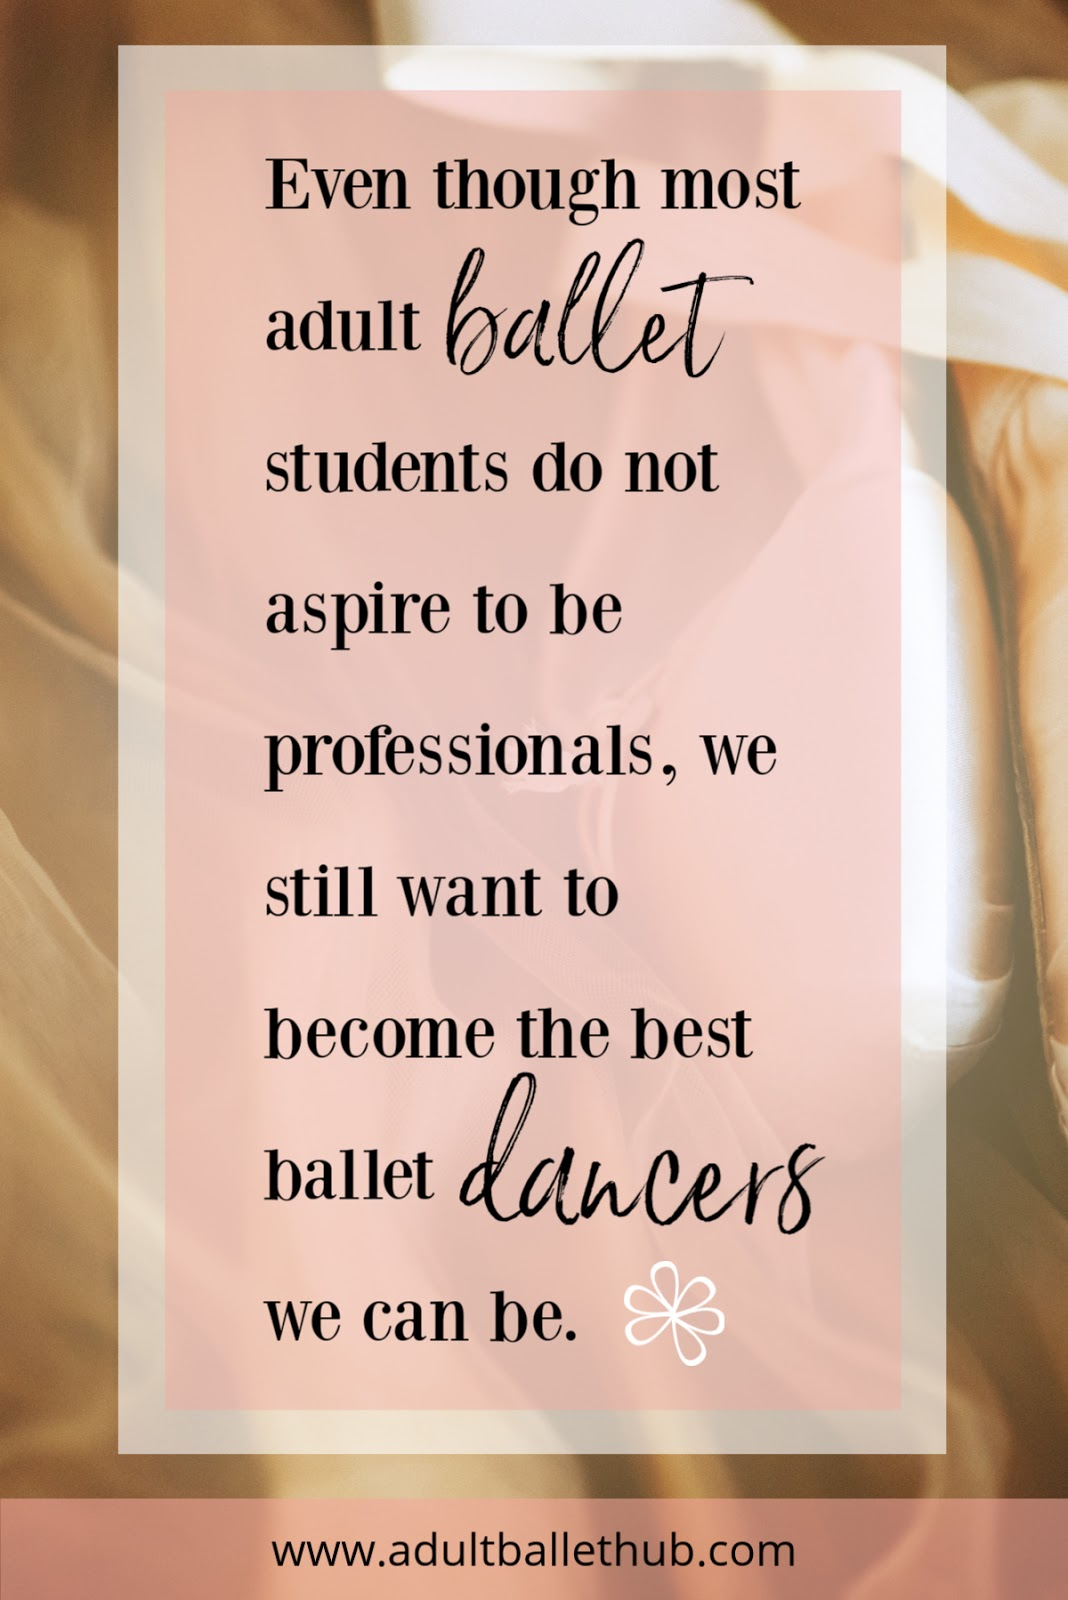 Even though most adult ballet students do not aspire to be professionals, they still want to be the best ballet dancers they can be.